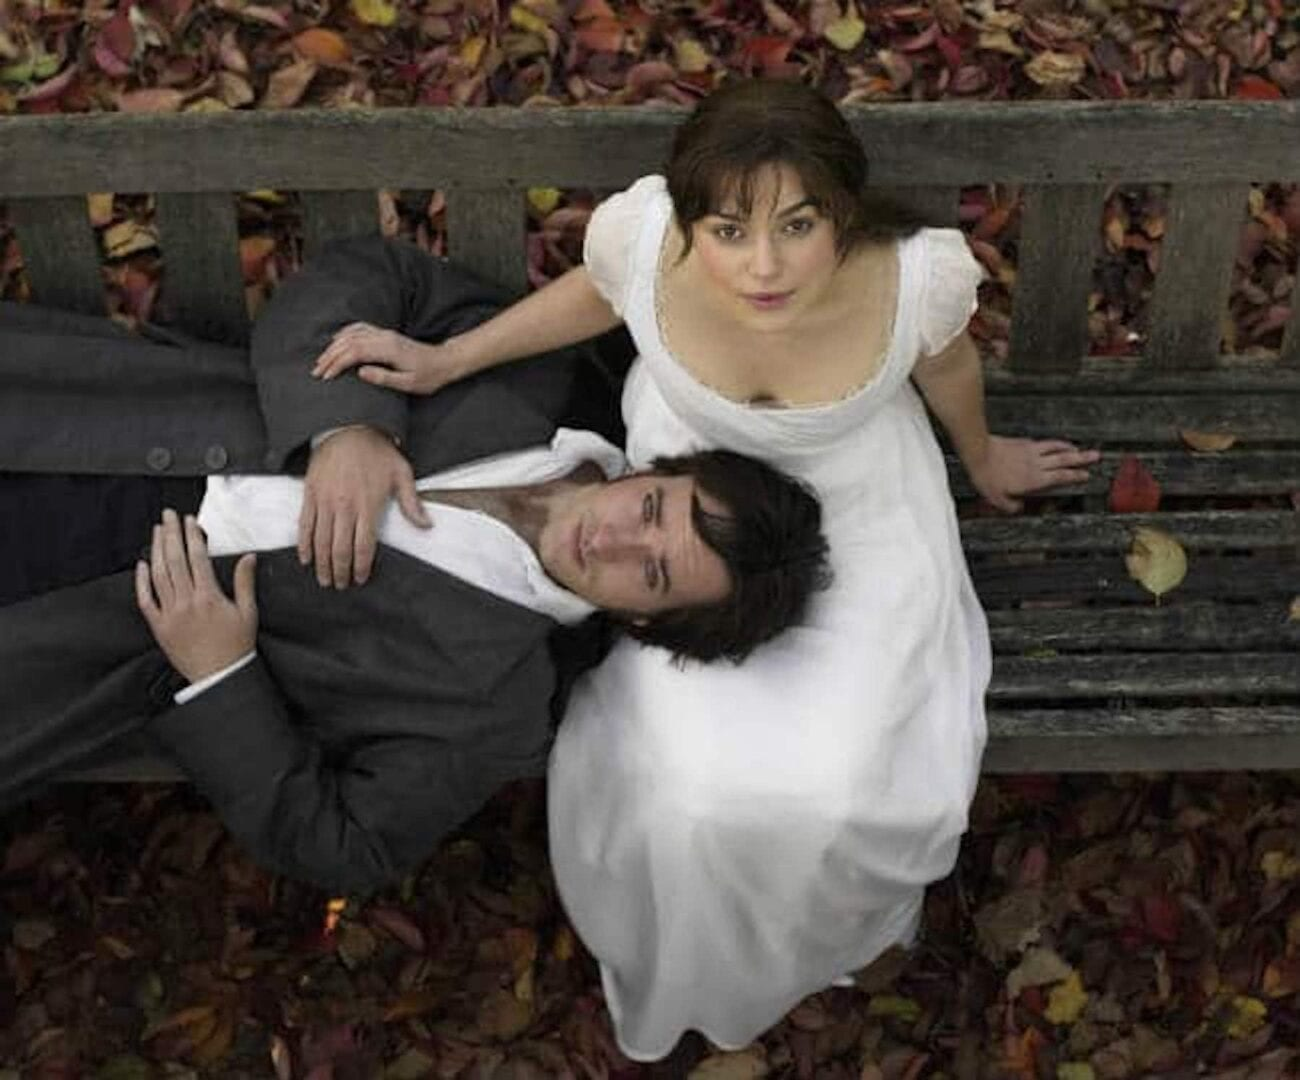 Swooning over 'Pride and Prejudice'? Live your Jane Austen fantasy life, if you want, through this upcoming Peacock dating series.